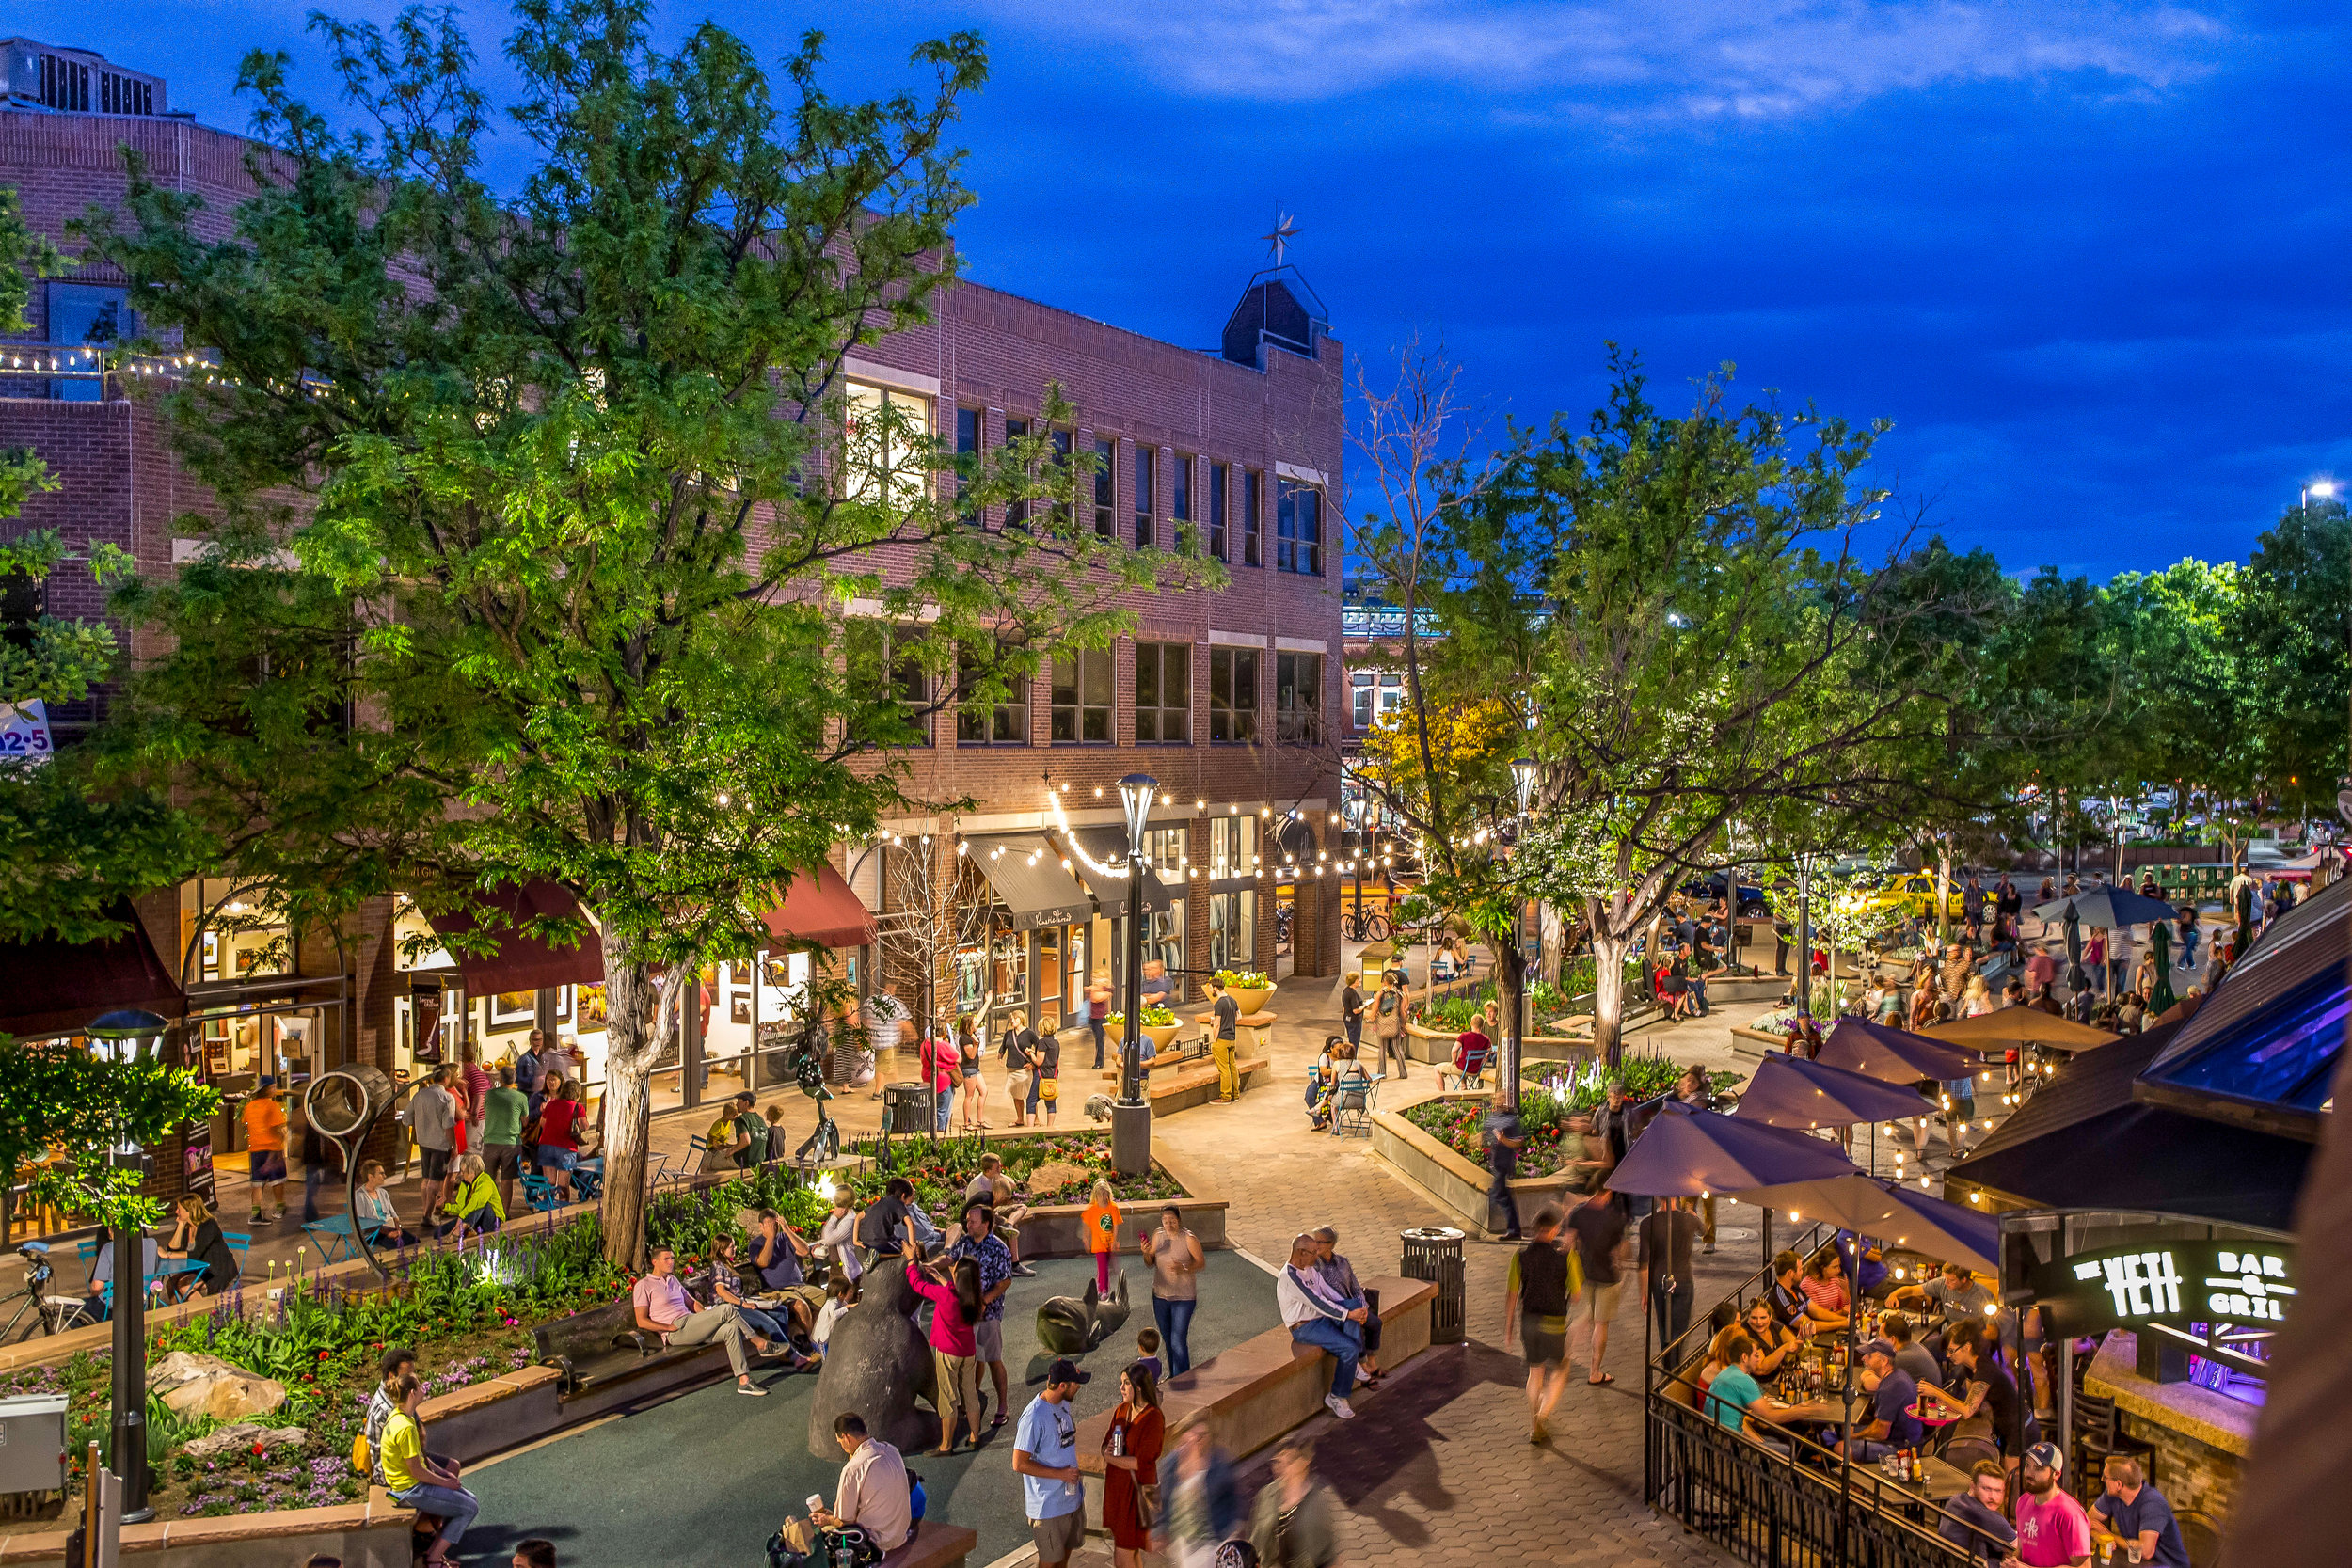 Old_Town_Square_Events_Plaza-edit (1 of 1).jpg